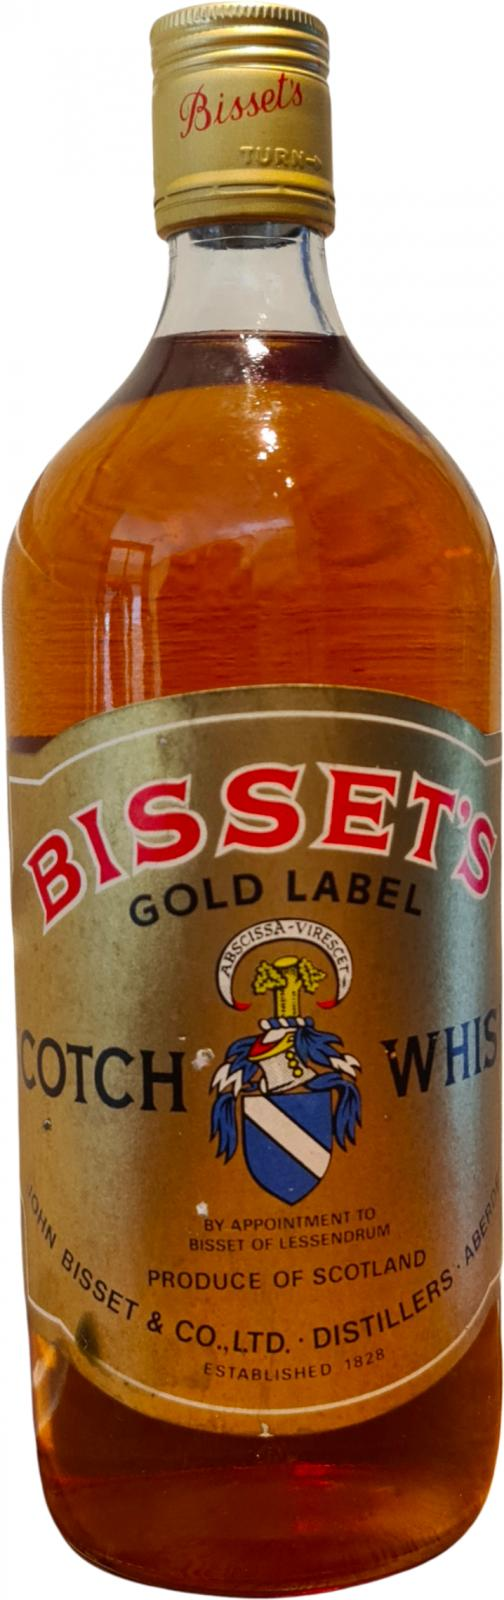 Bisset's Gold Label